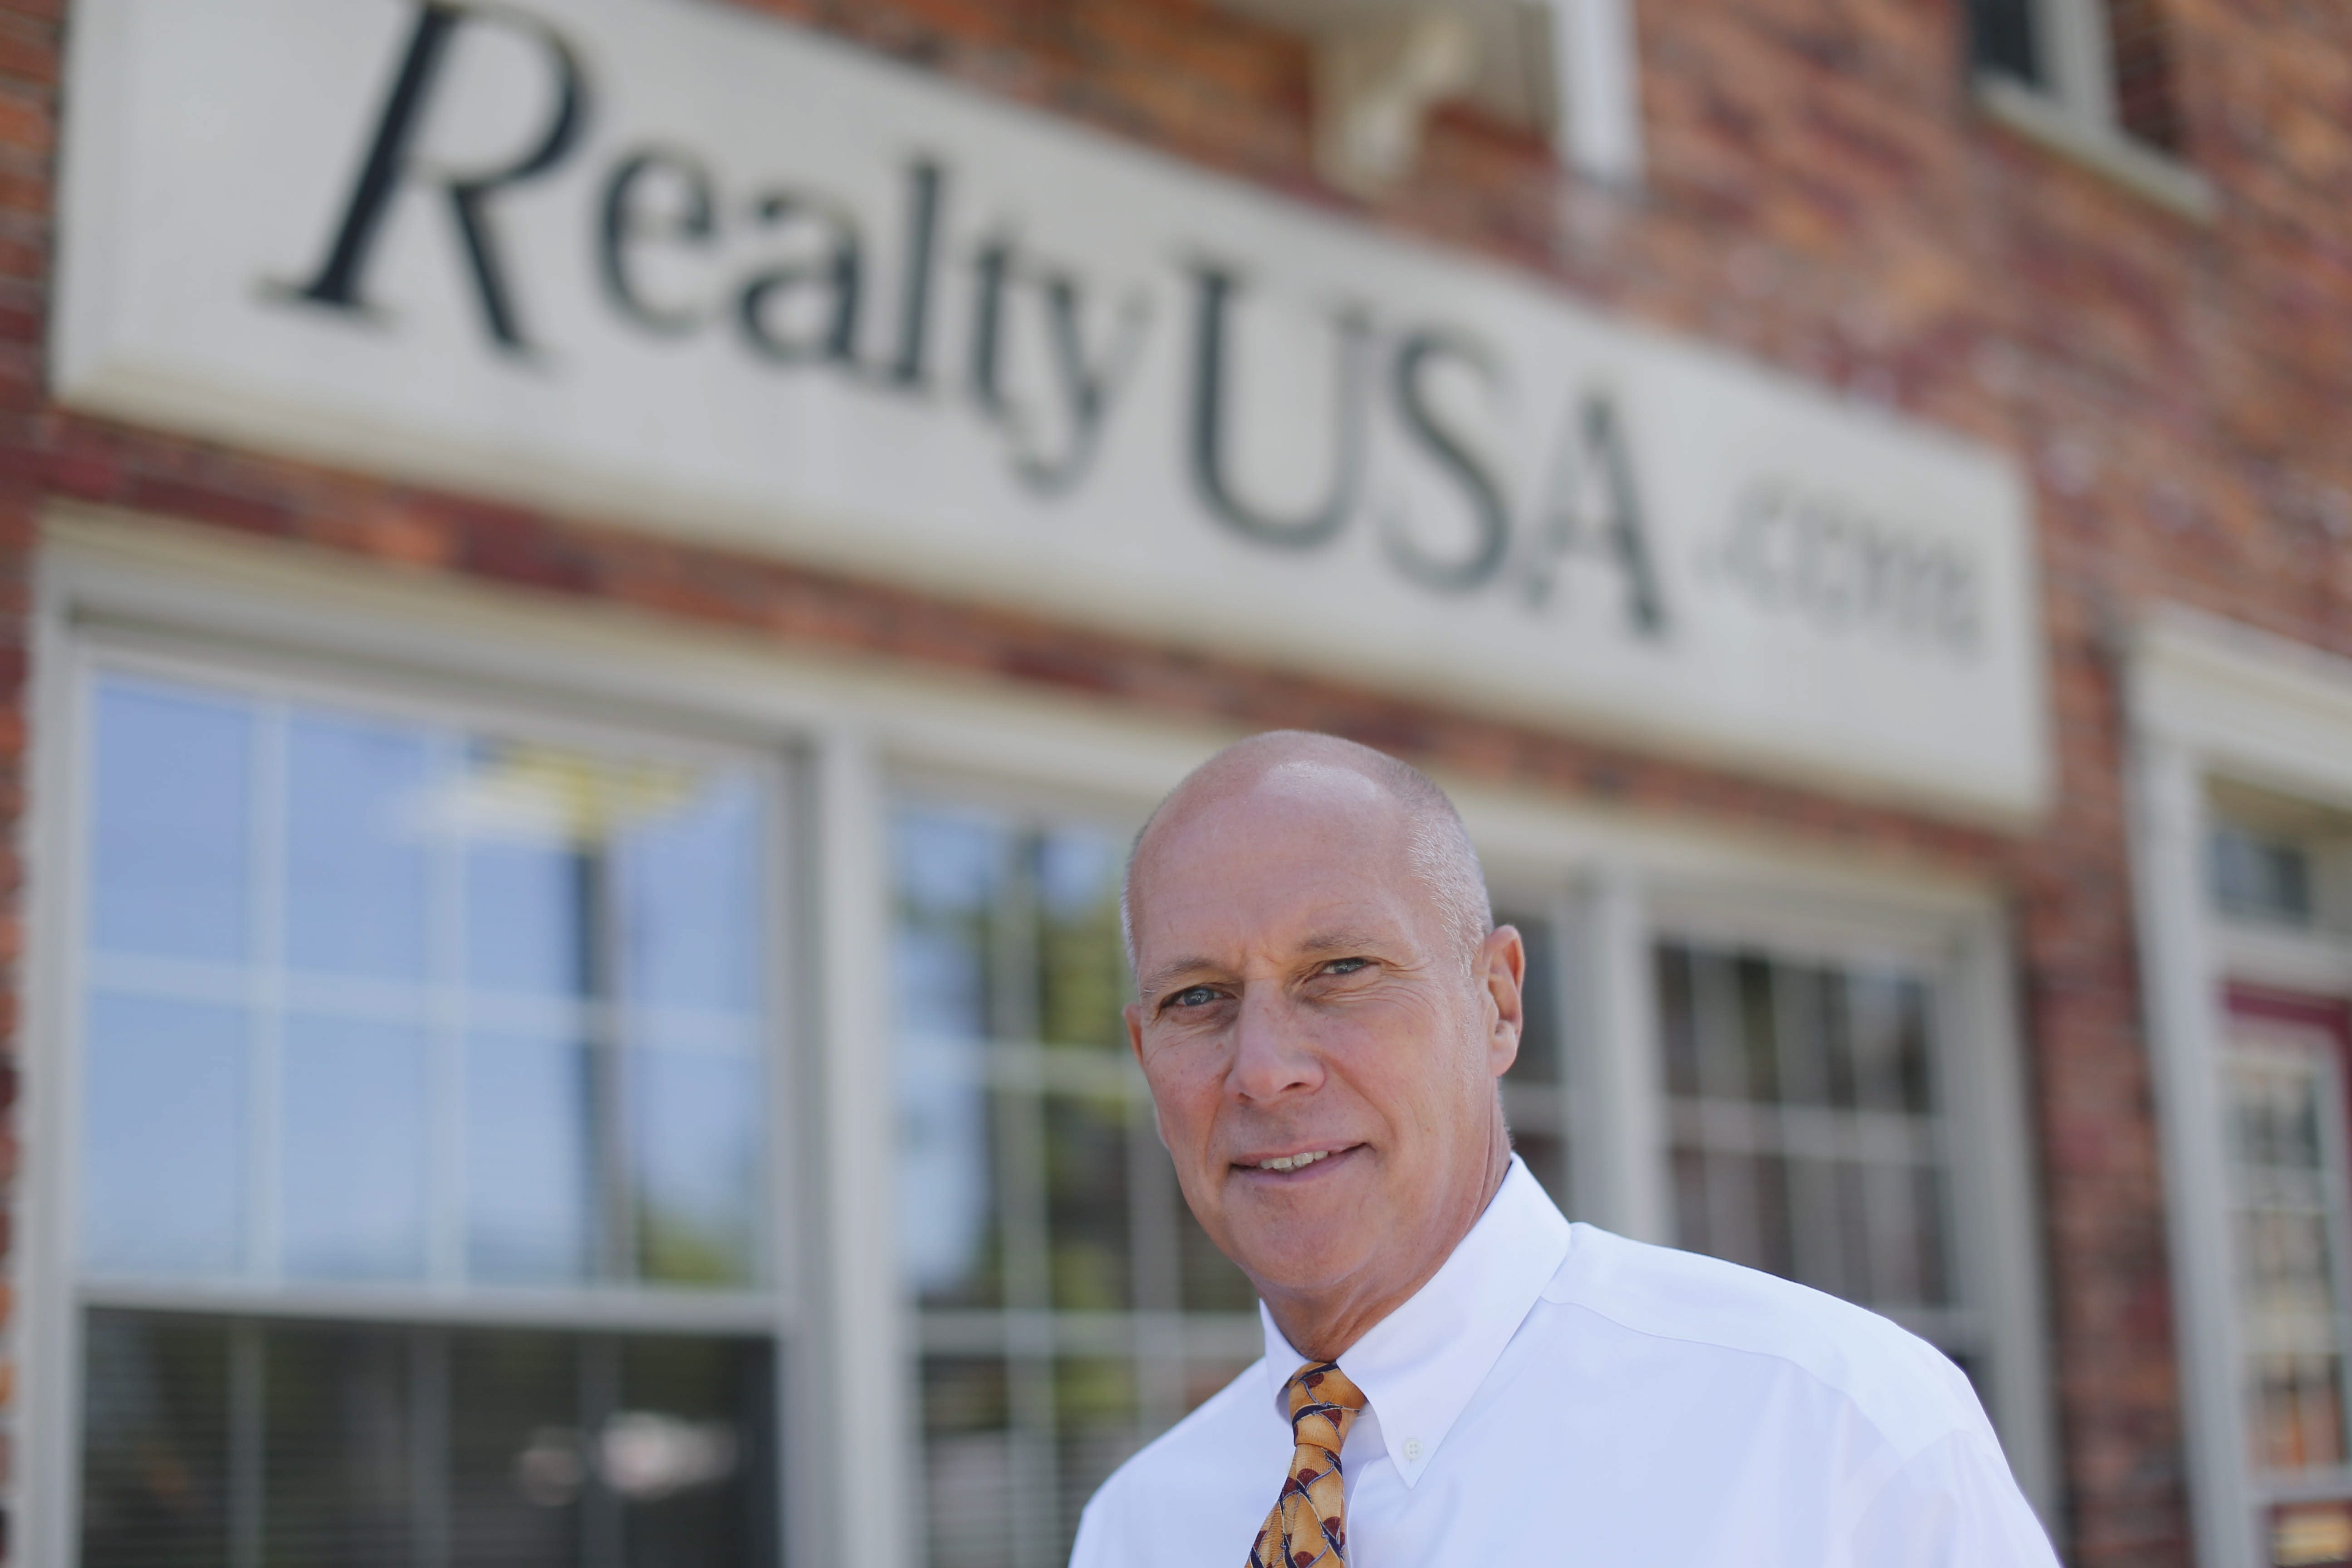 Realty USA President and CEO Merle L. Whitehead sold his company to Howard Hanna Real Estate Services of Pittsburgh.   (Derek Gee/Buffalo News)